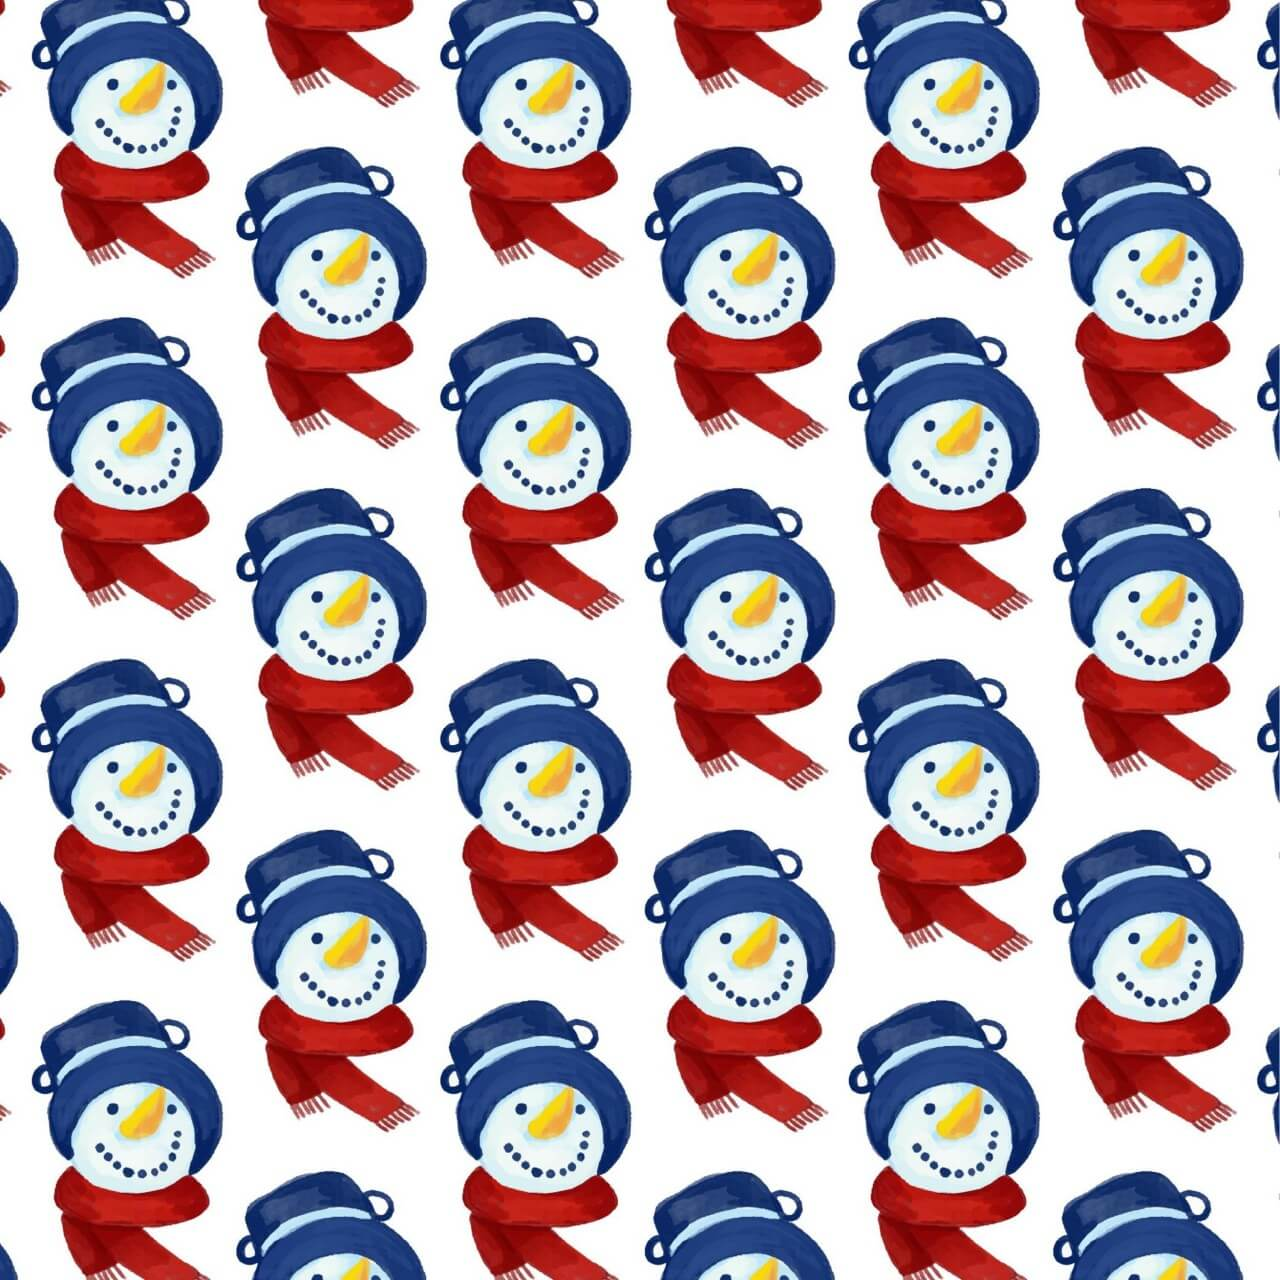 """Free vector """"Christmas pattern with snowman head"""""""